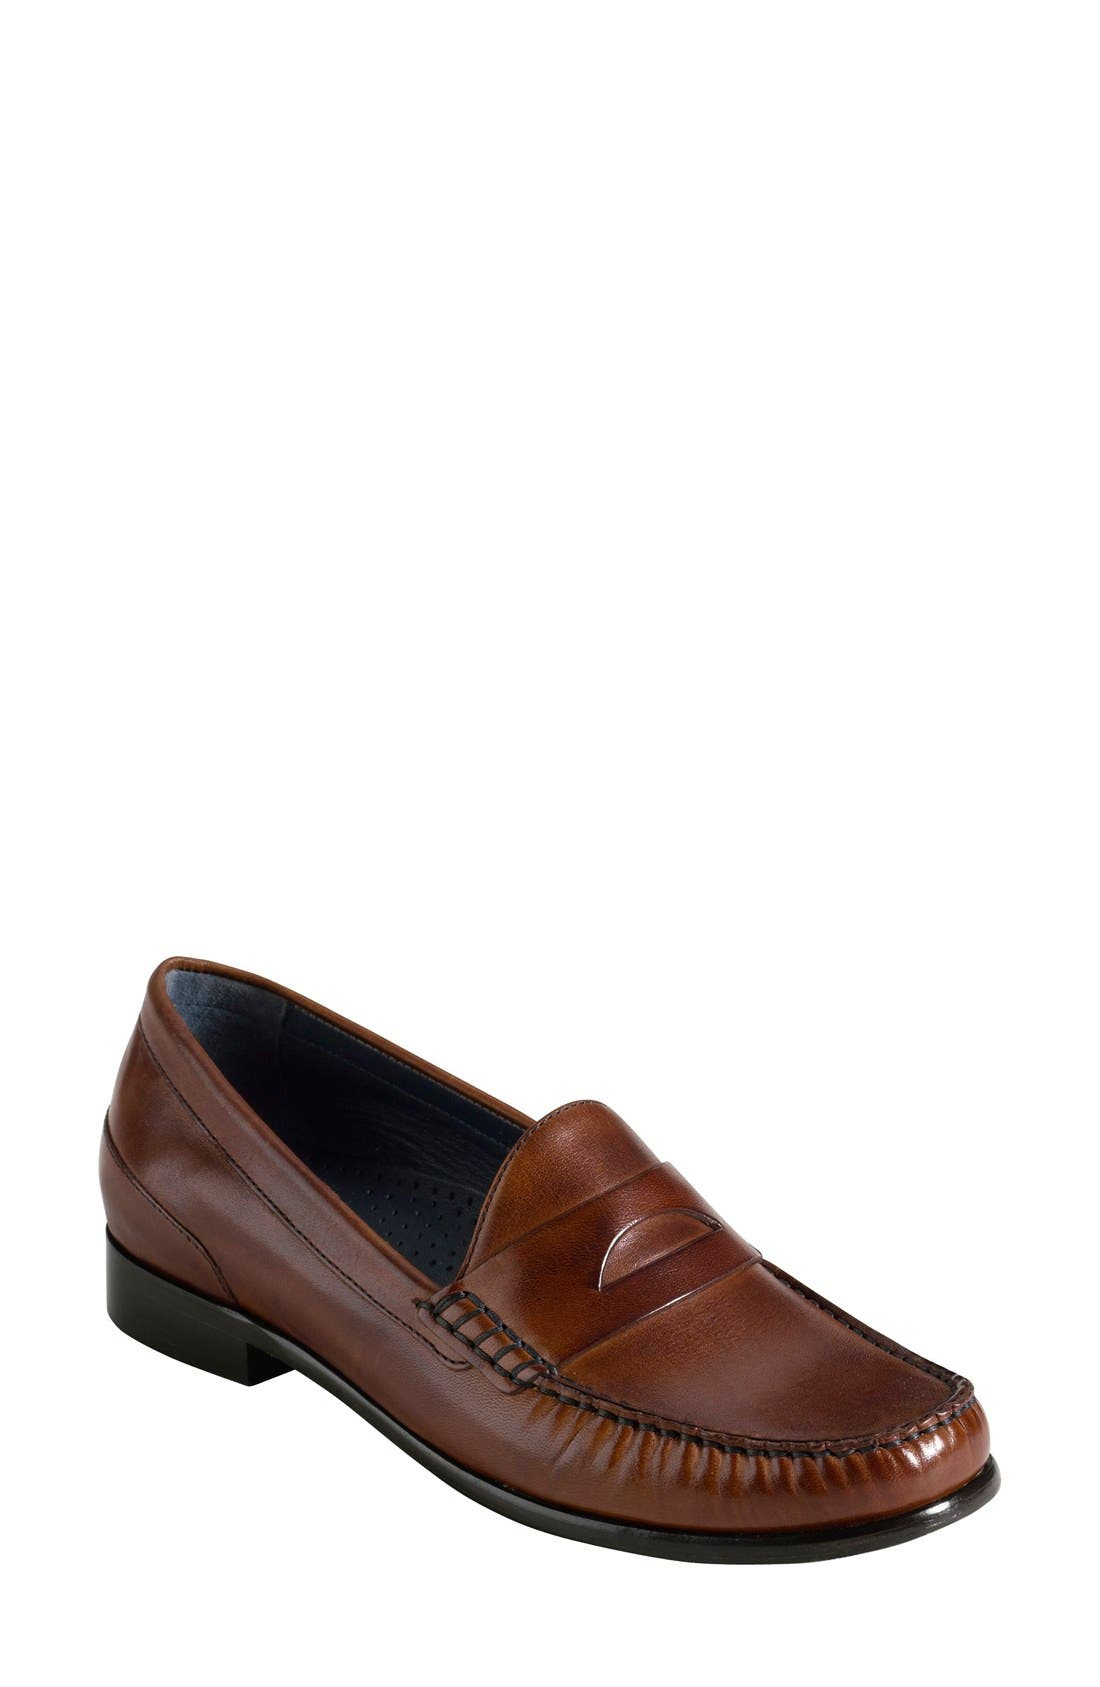 'Laurel' Moc Loafer,                         Main,                         color, 200